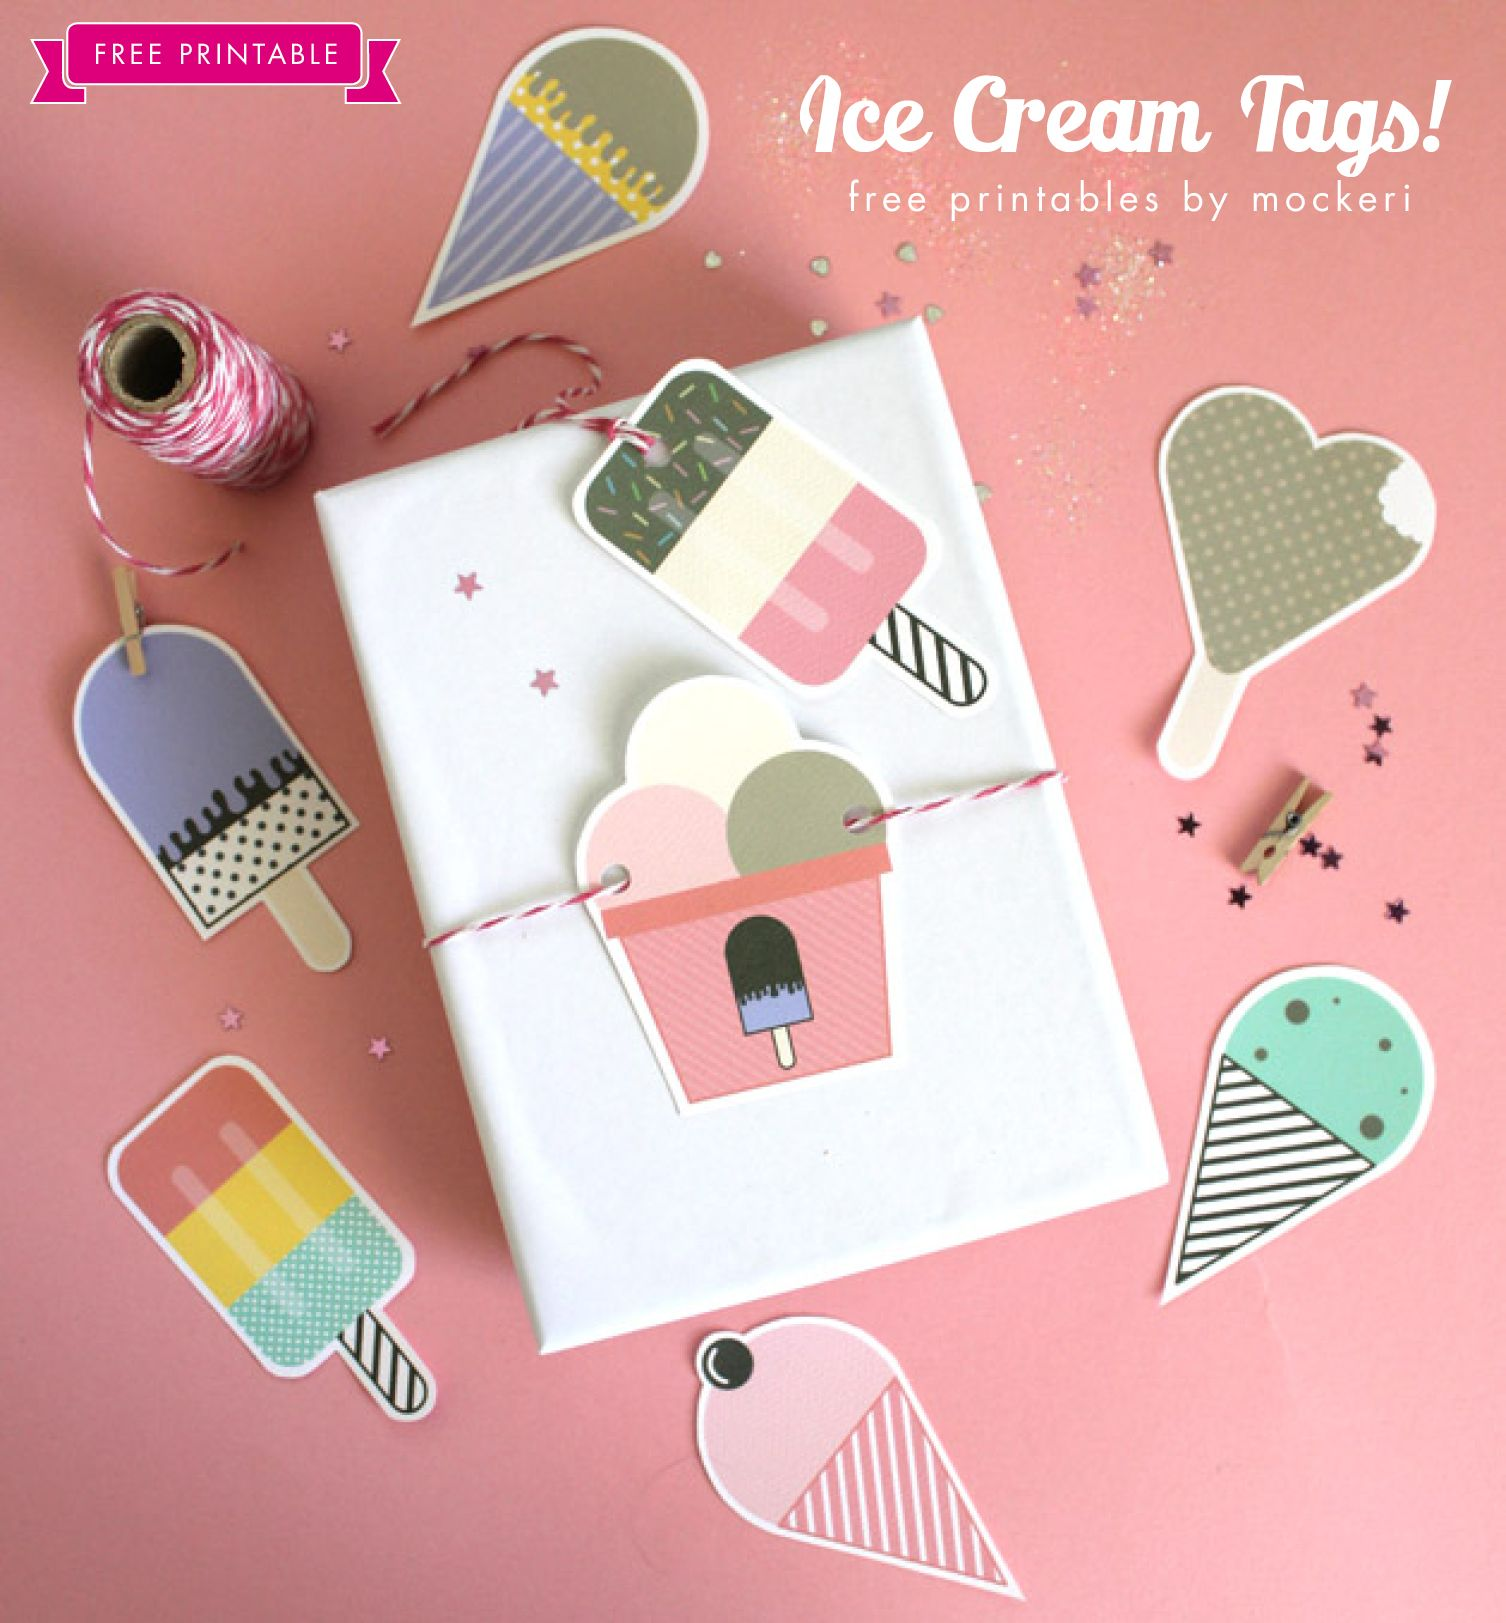 Perfect for summer free printable ice cream tags find more free free printable ice cream gift tags for summer gifts negle Choice Image